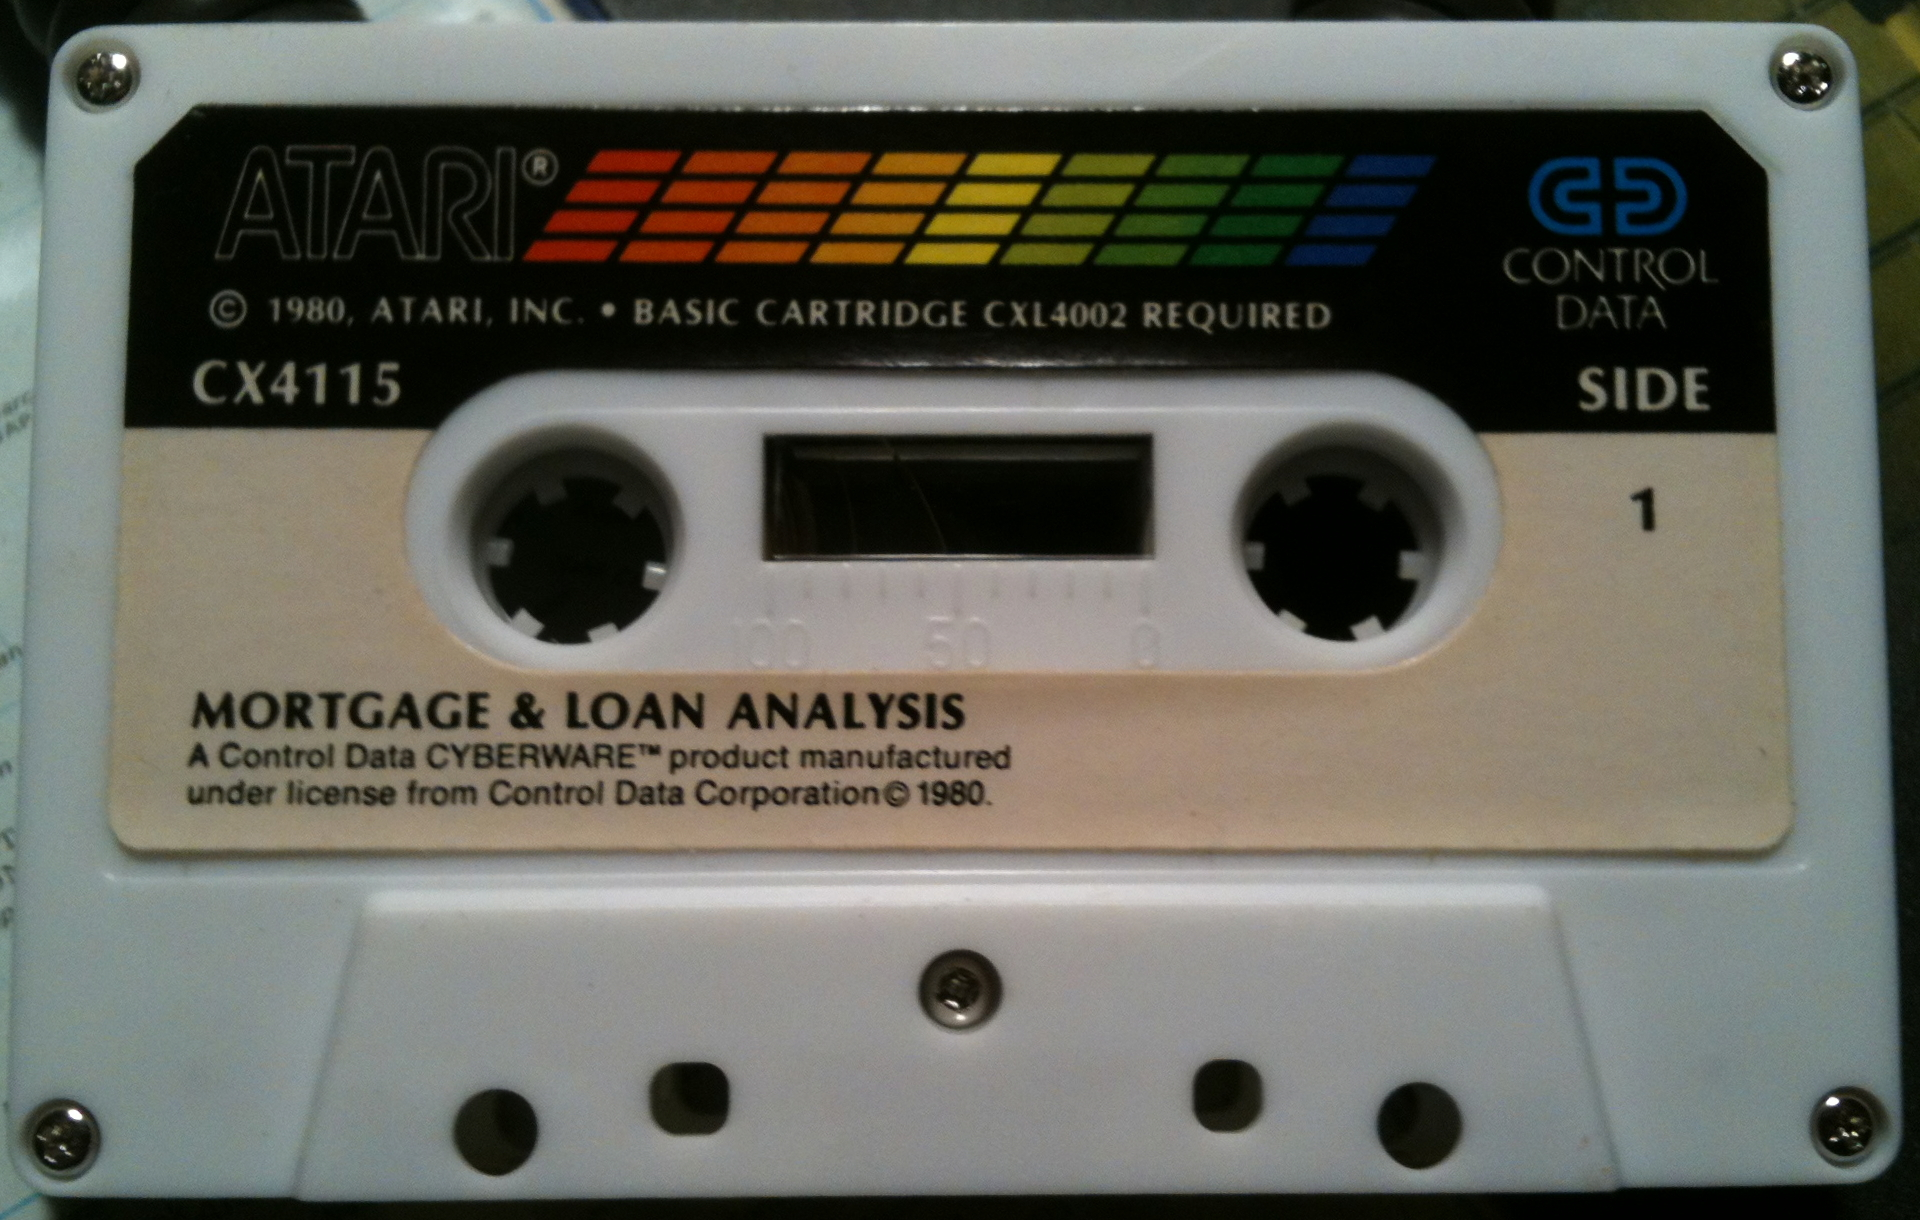 Mortgage & Loan Analysis/tape_cover.jpg